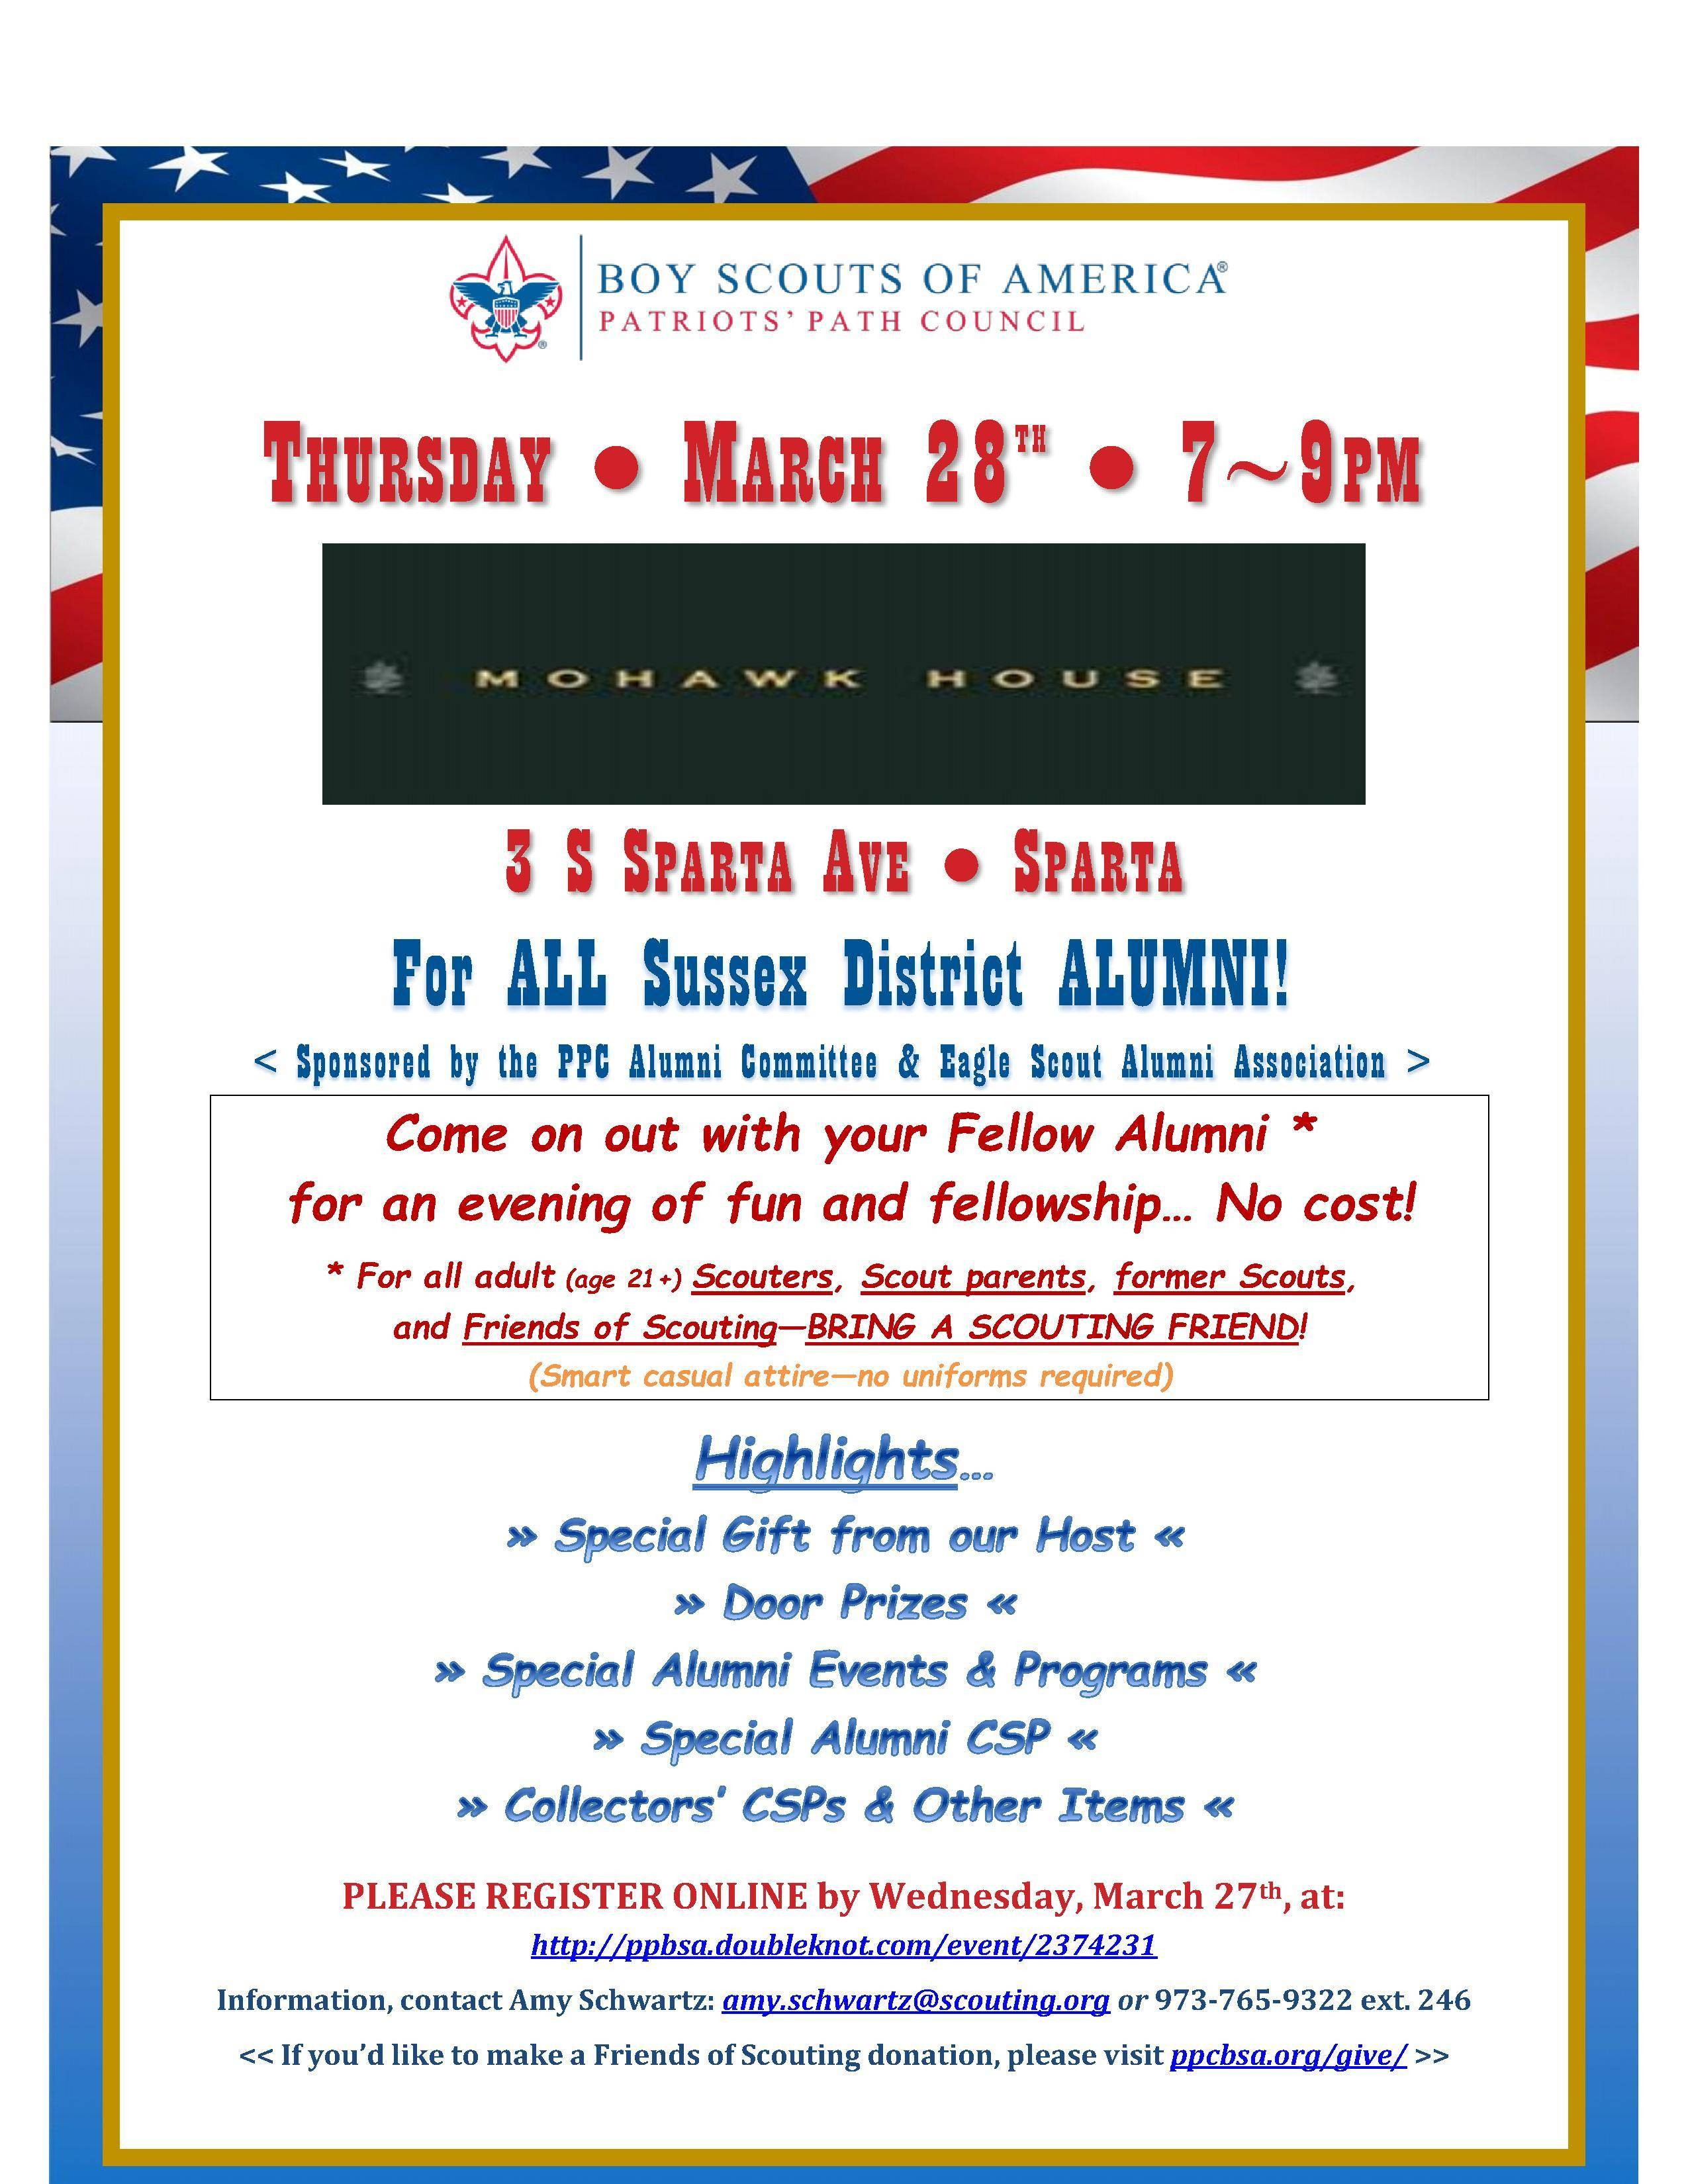 Sussex District Boy Scouts of America Alumni Gathering - TAPinto